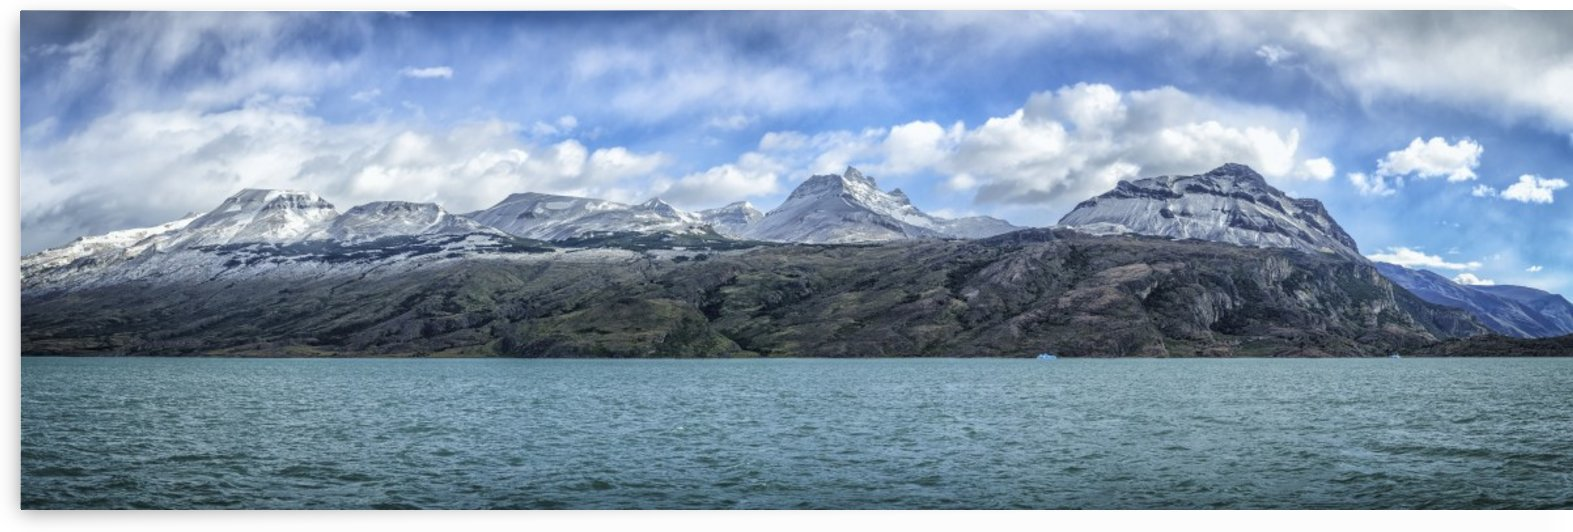 Snow capped mountains off North Branch of Lago Argentino in Patagonia; Santa Cruz Province, Argentina by PacificStock